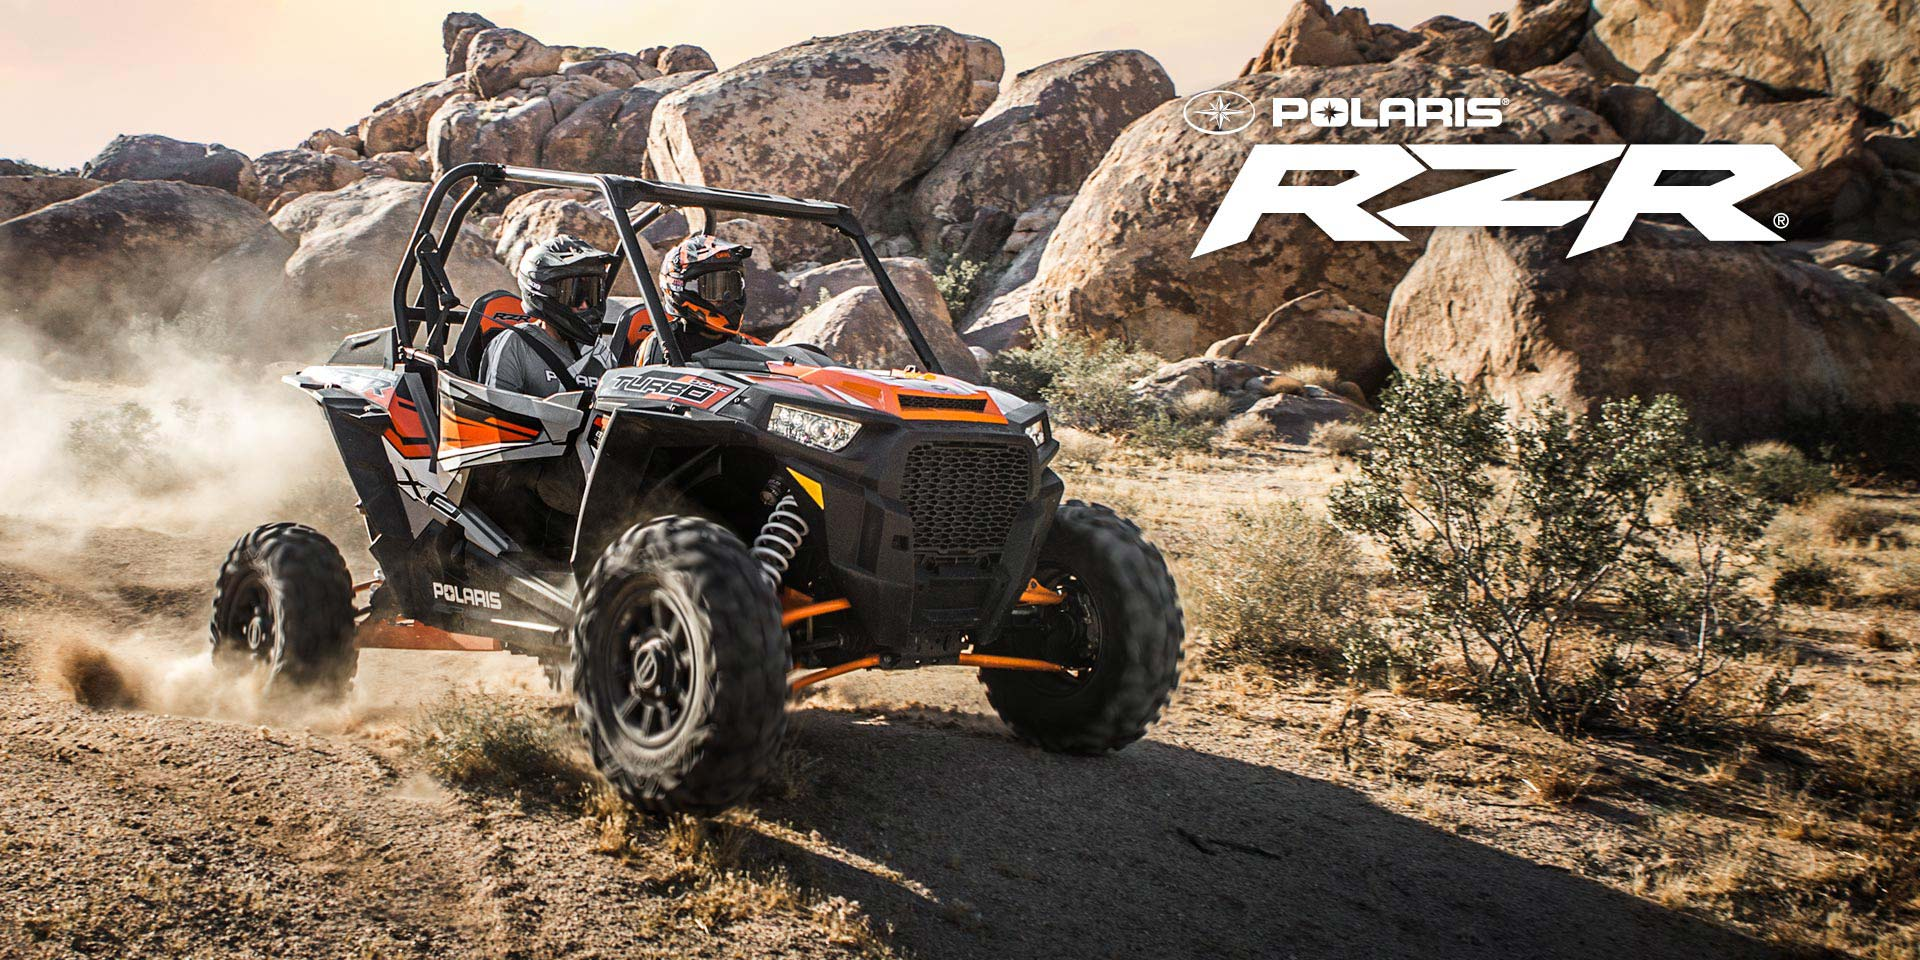 Polaris UK:Polaris Britain